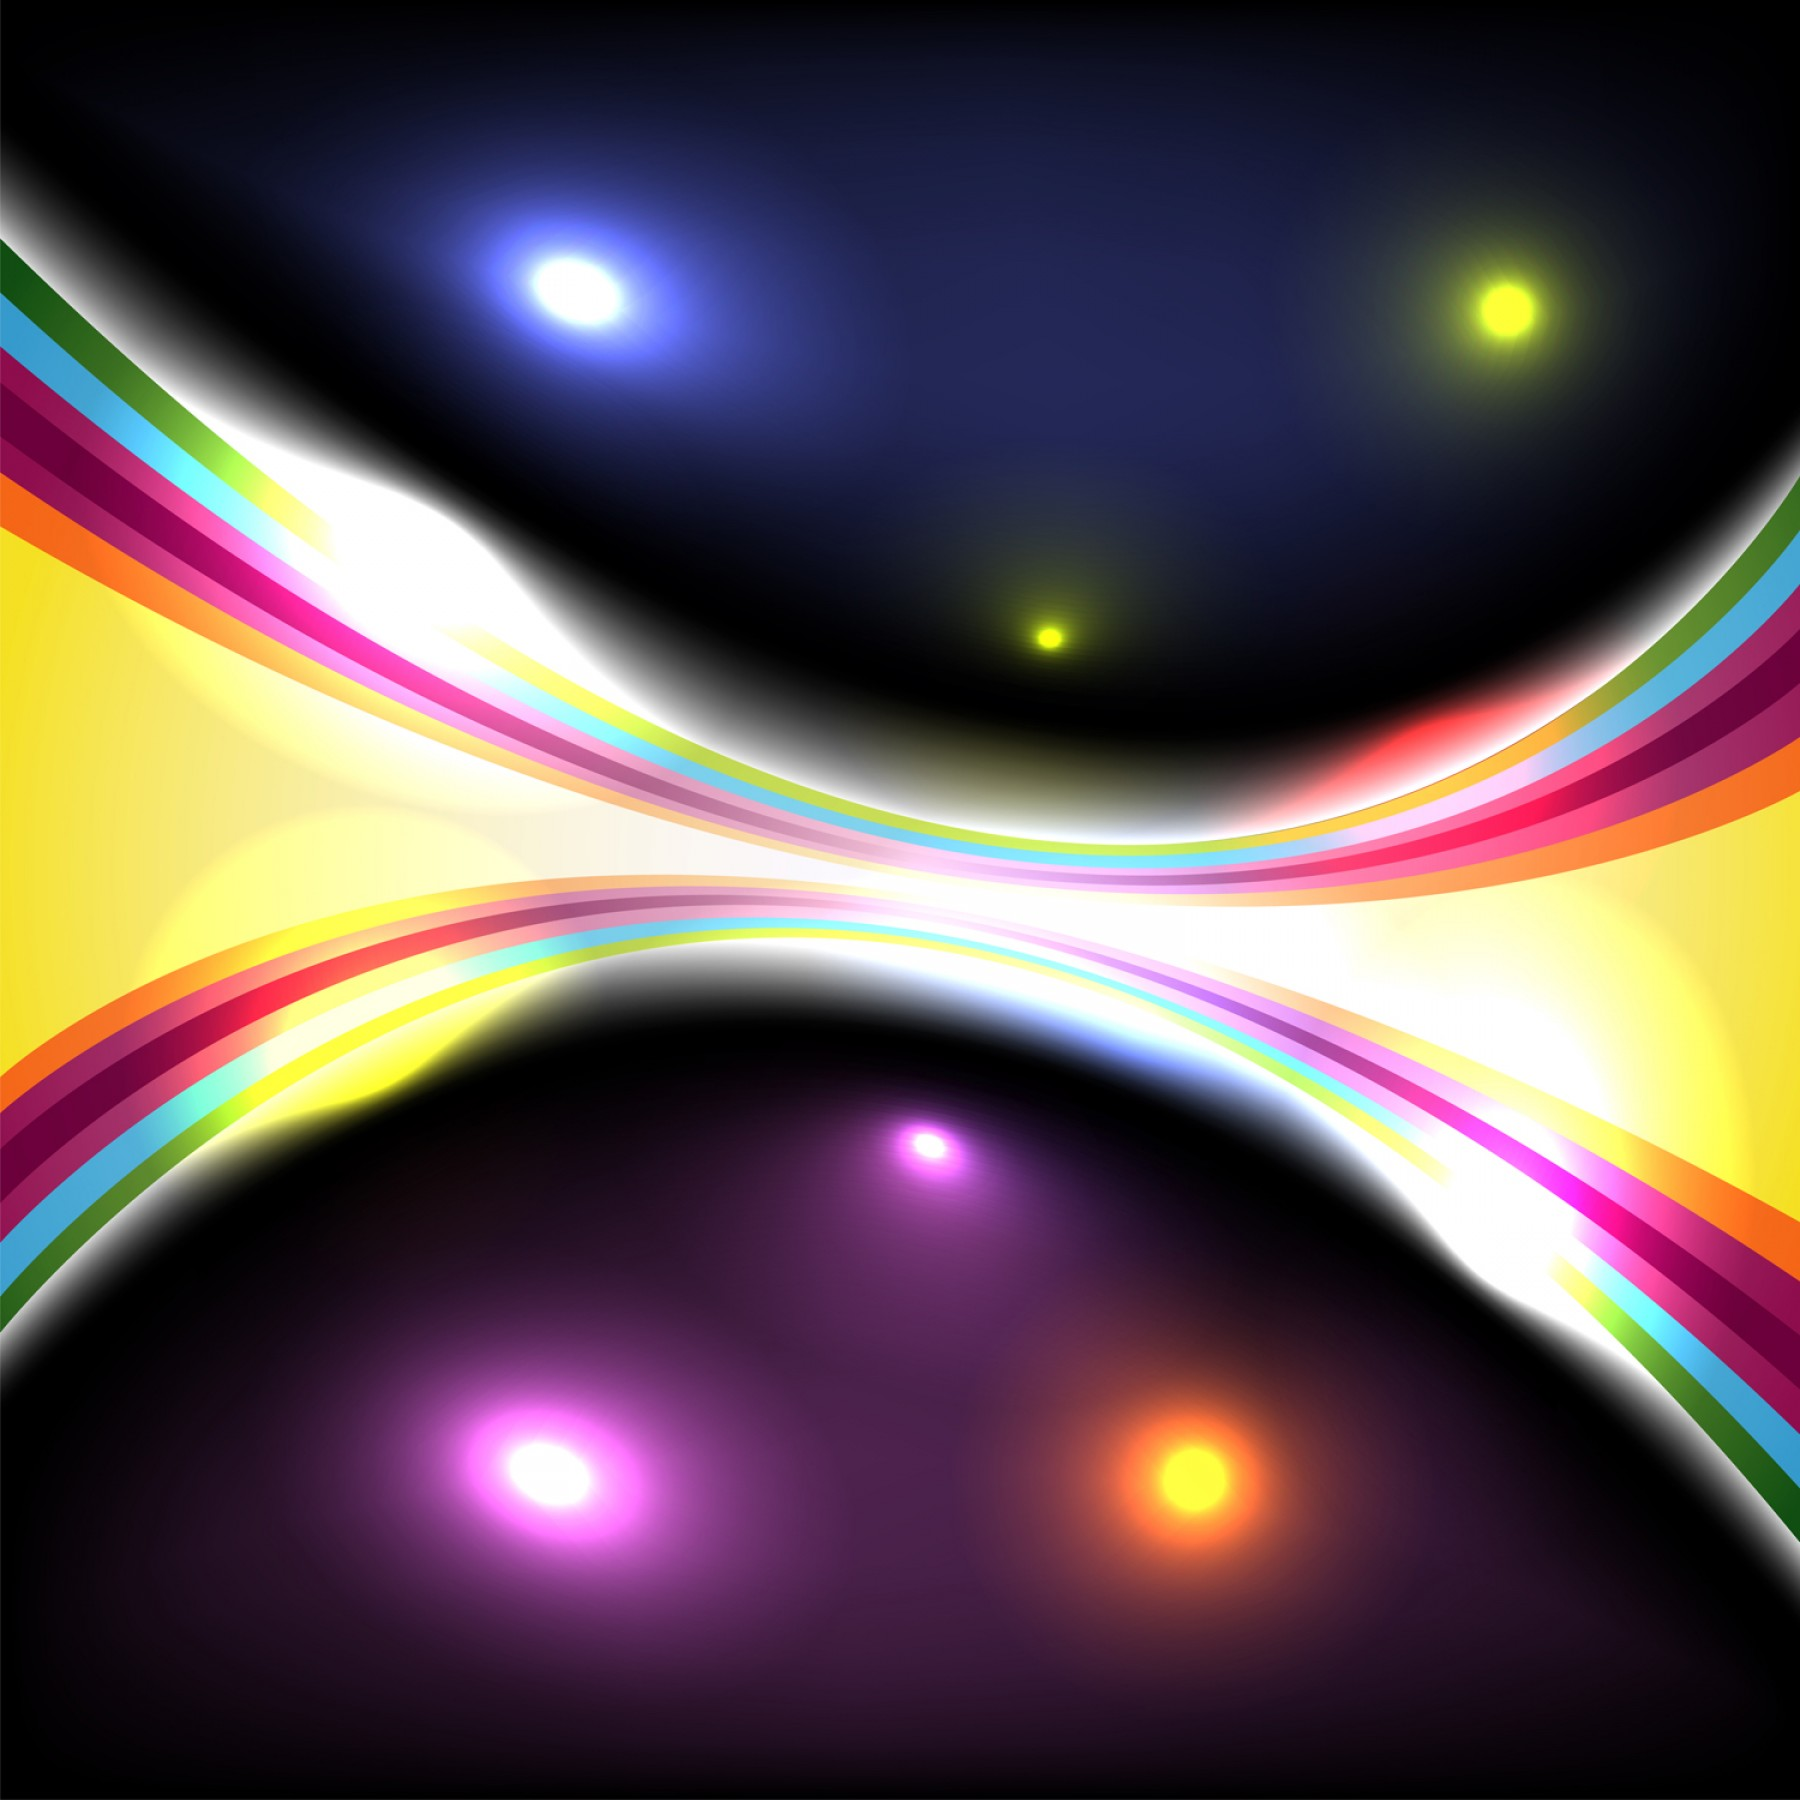 Free Vector Backgrounds Illustrator: Adobe Illustrator Tutorial Abstract Glowing Effect